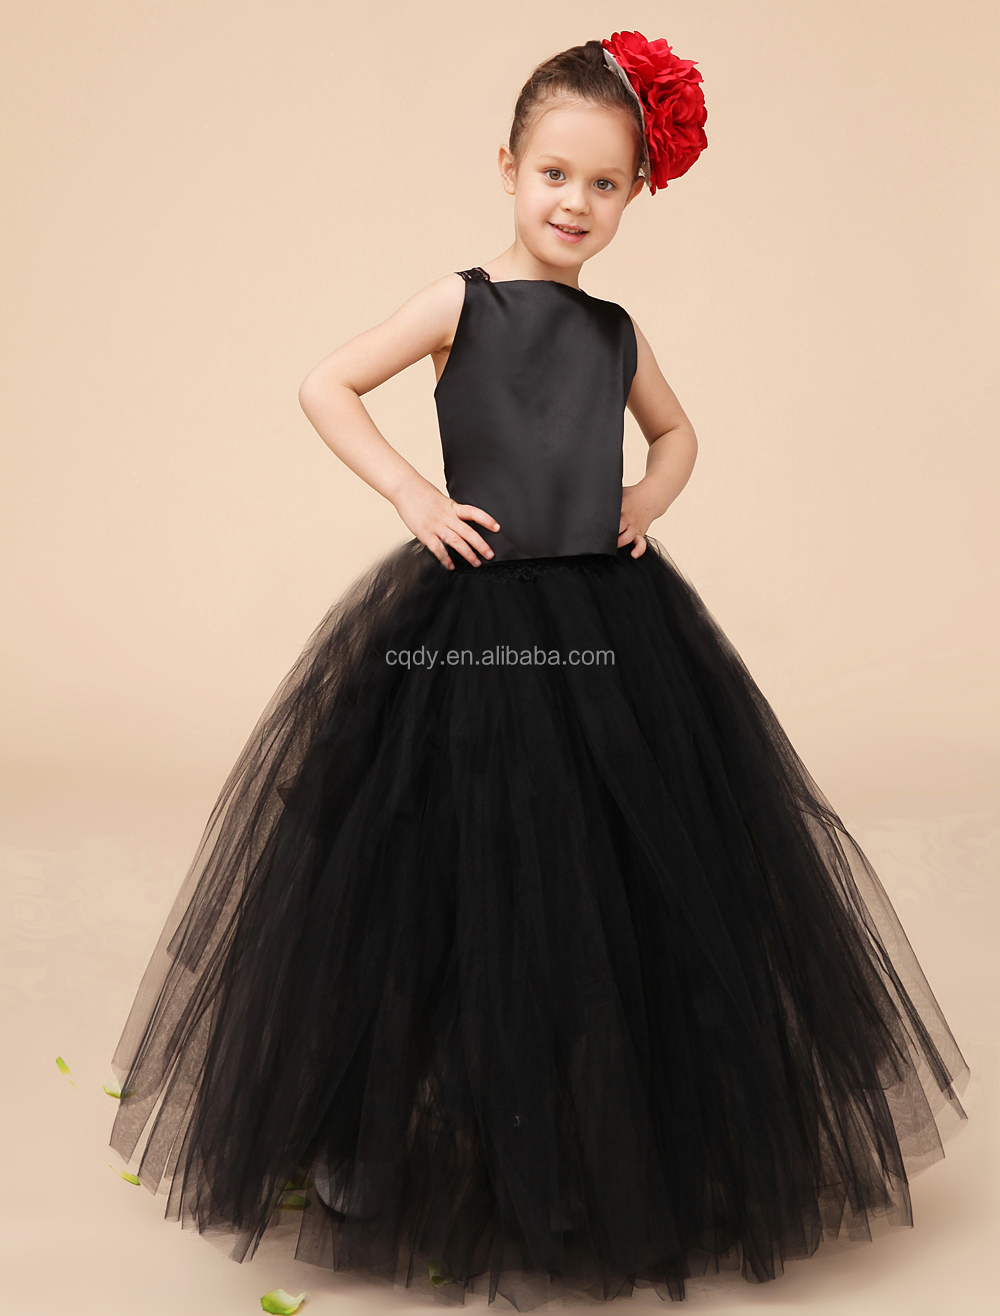 02b6f3a944 Children Black Cotton Frocks Design For Flower Girls Summer Party Dresses  Fancy Print Short Sleeve Elegant